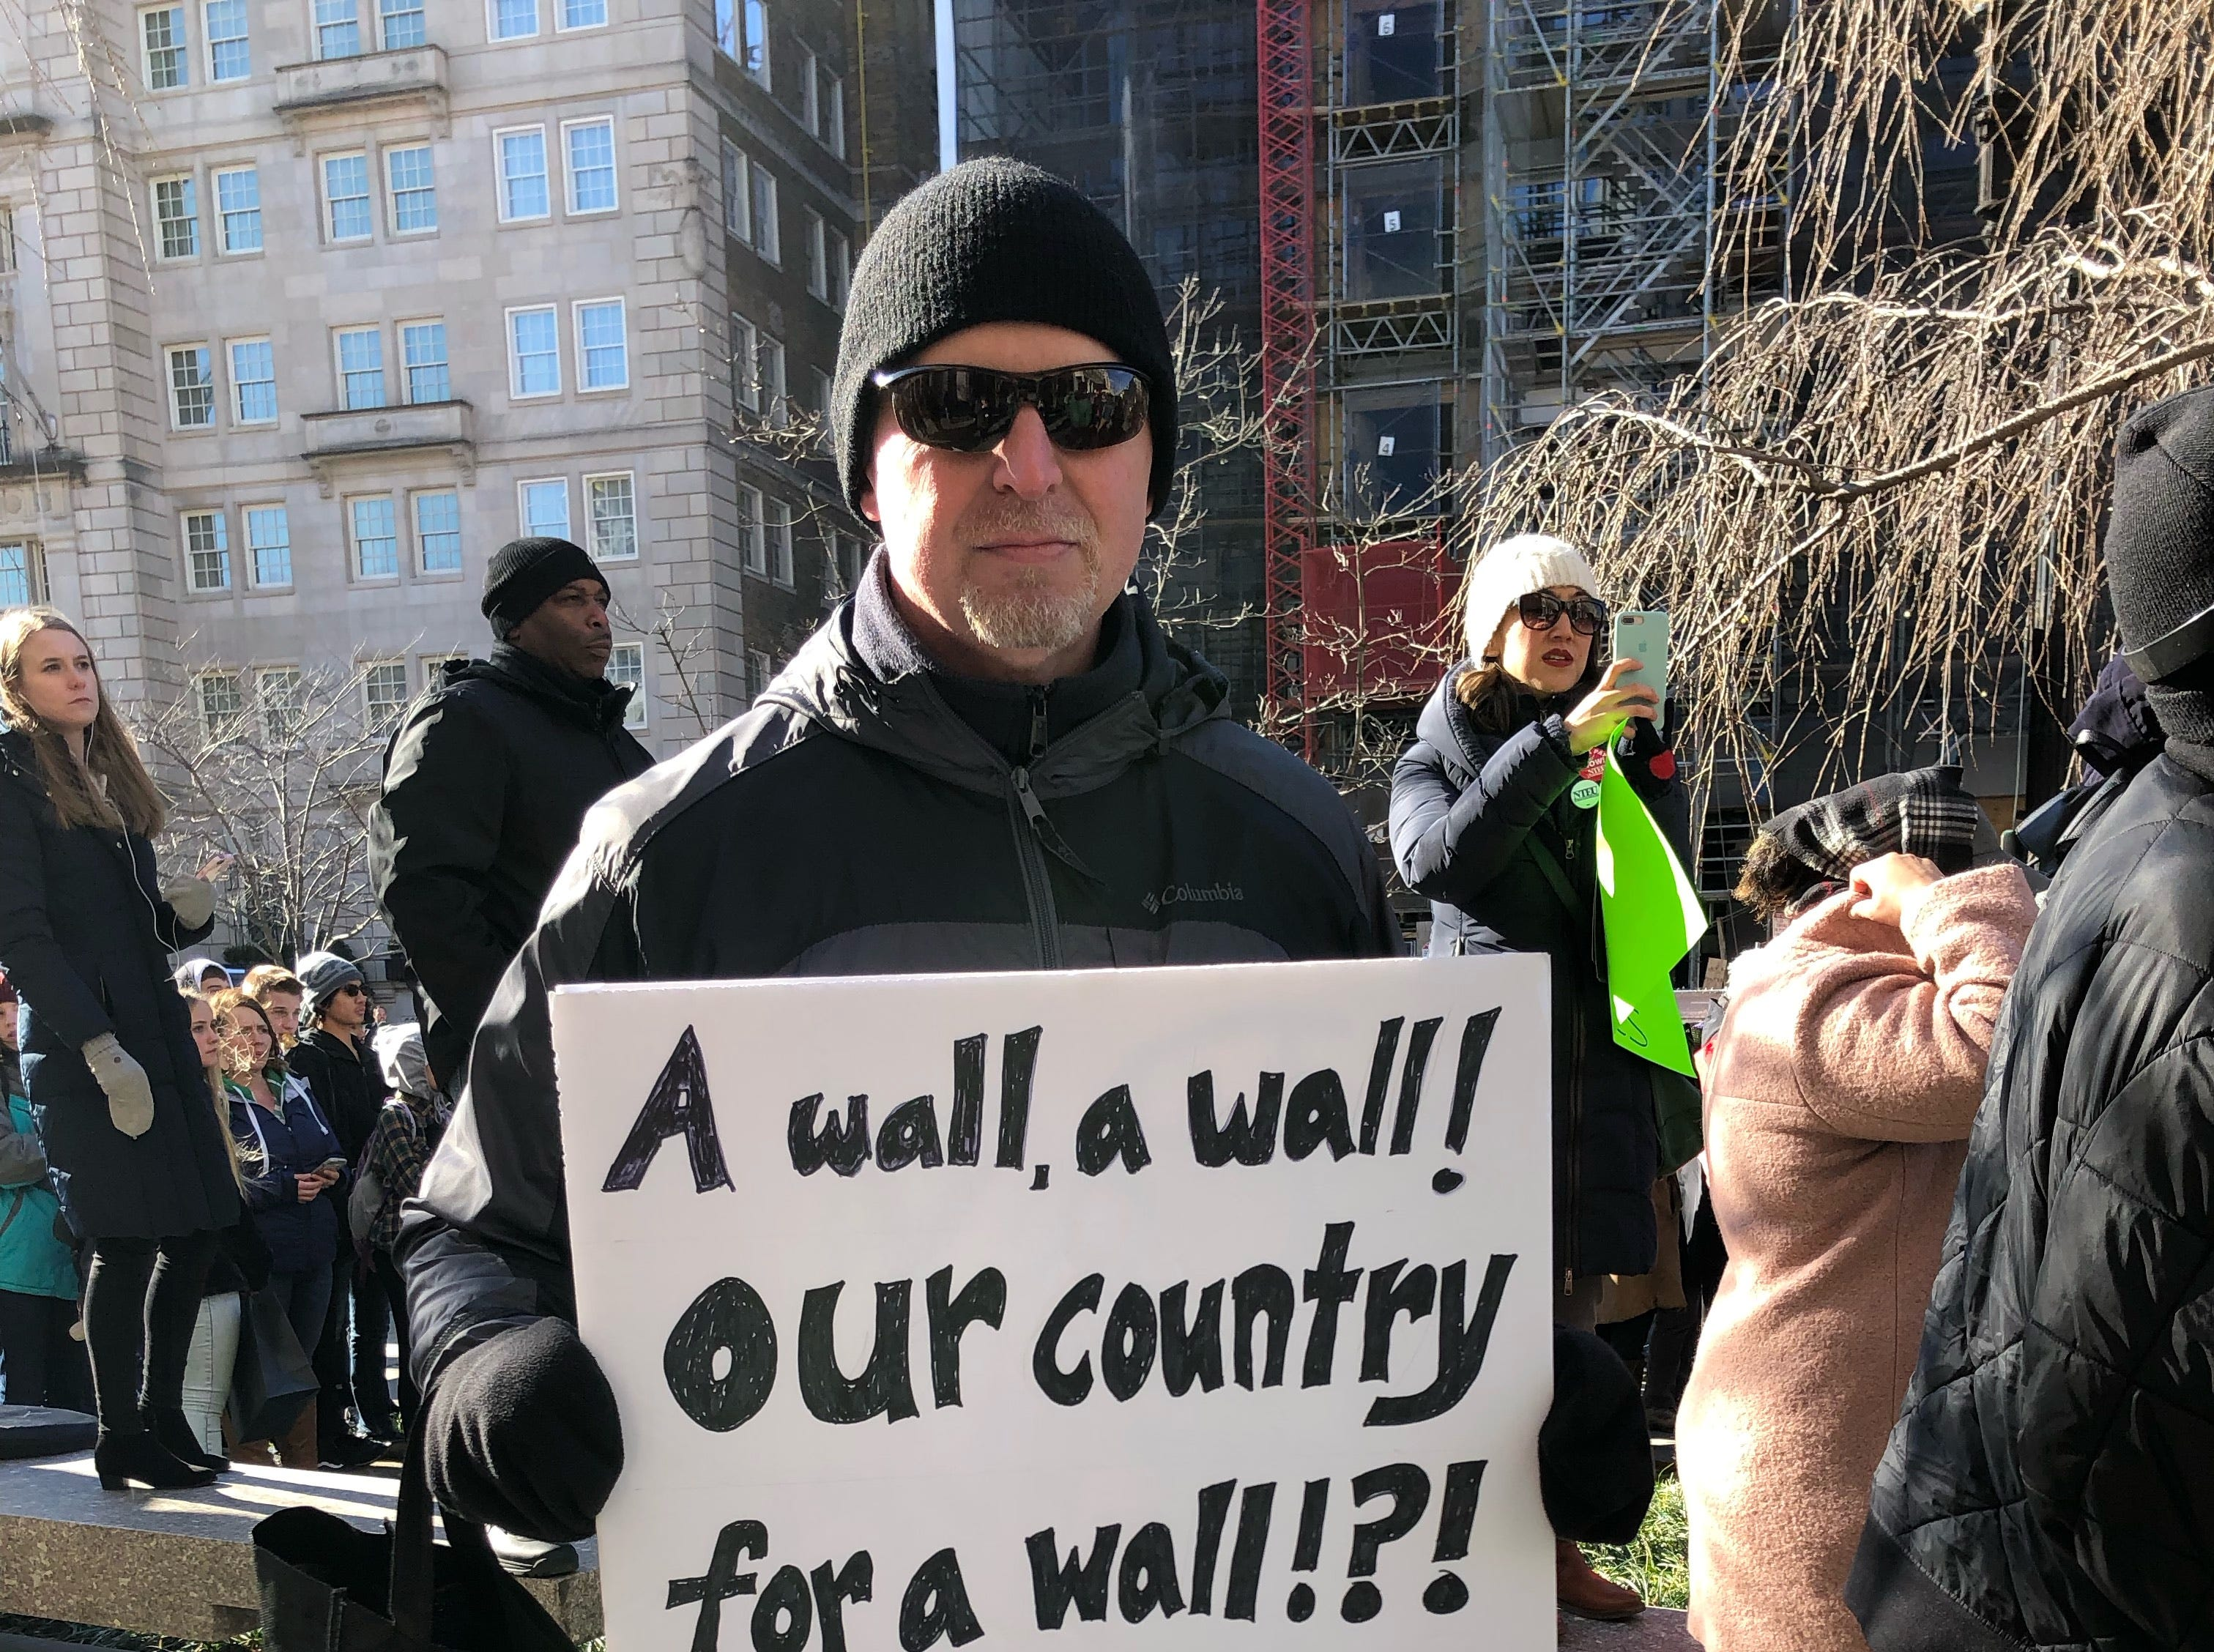 Anthony Jernigan, a Coast Guard environmental protection specialist, held a sign that said ÒA wall, a wall! Our country for a wall!?!Ó in Washington, D.C. on Thursday as federal workers rallied for their jobs.